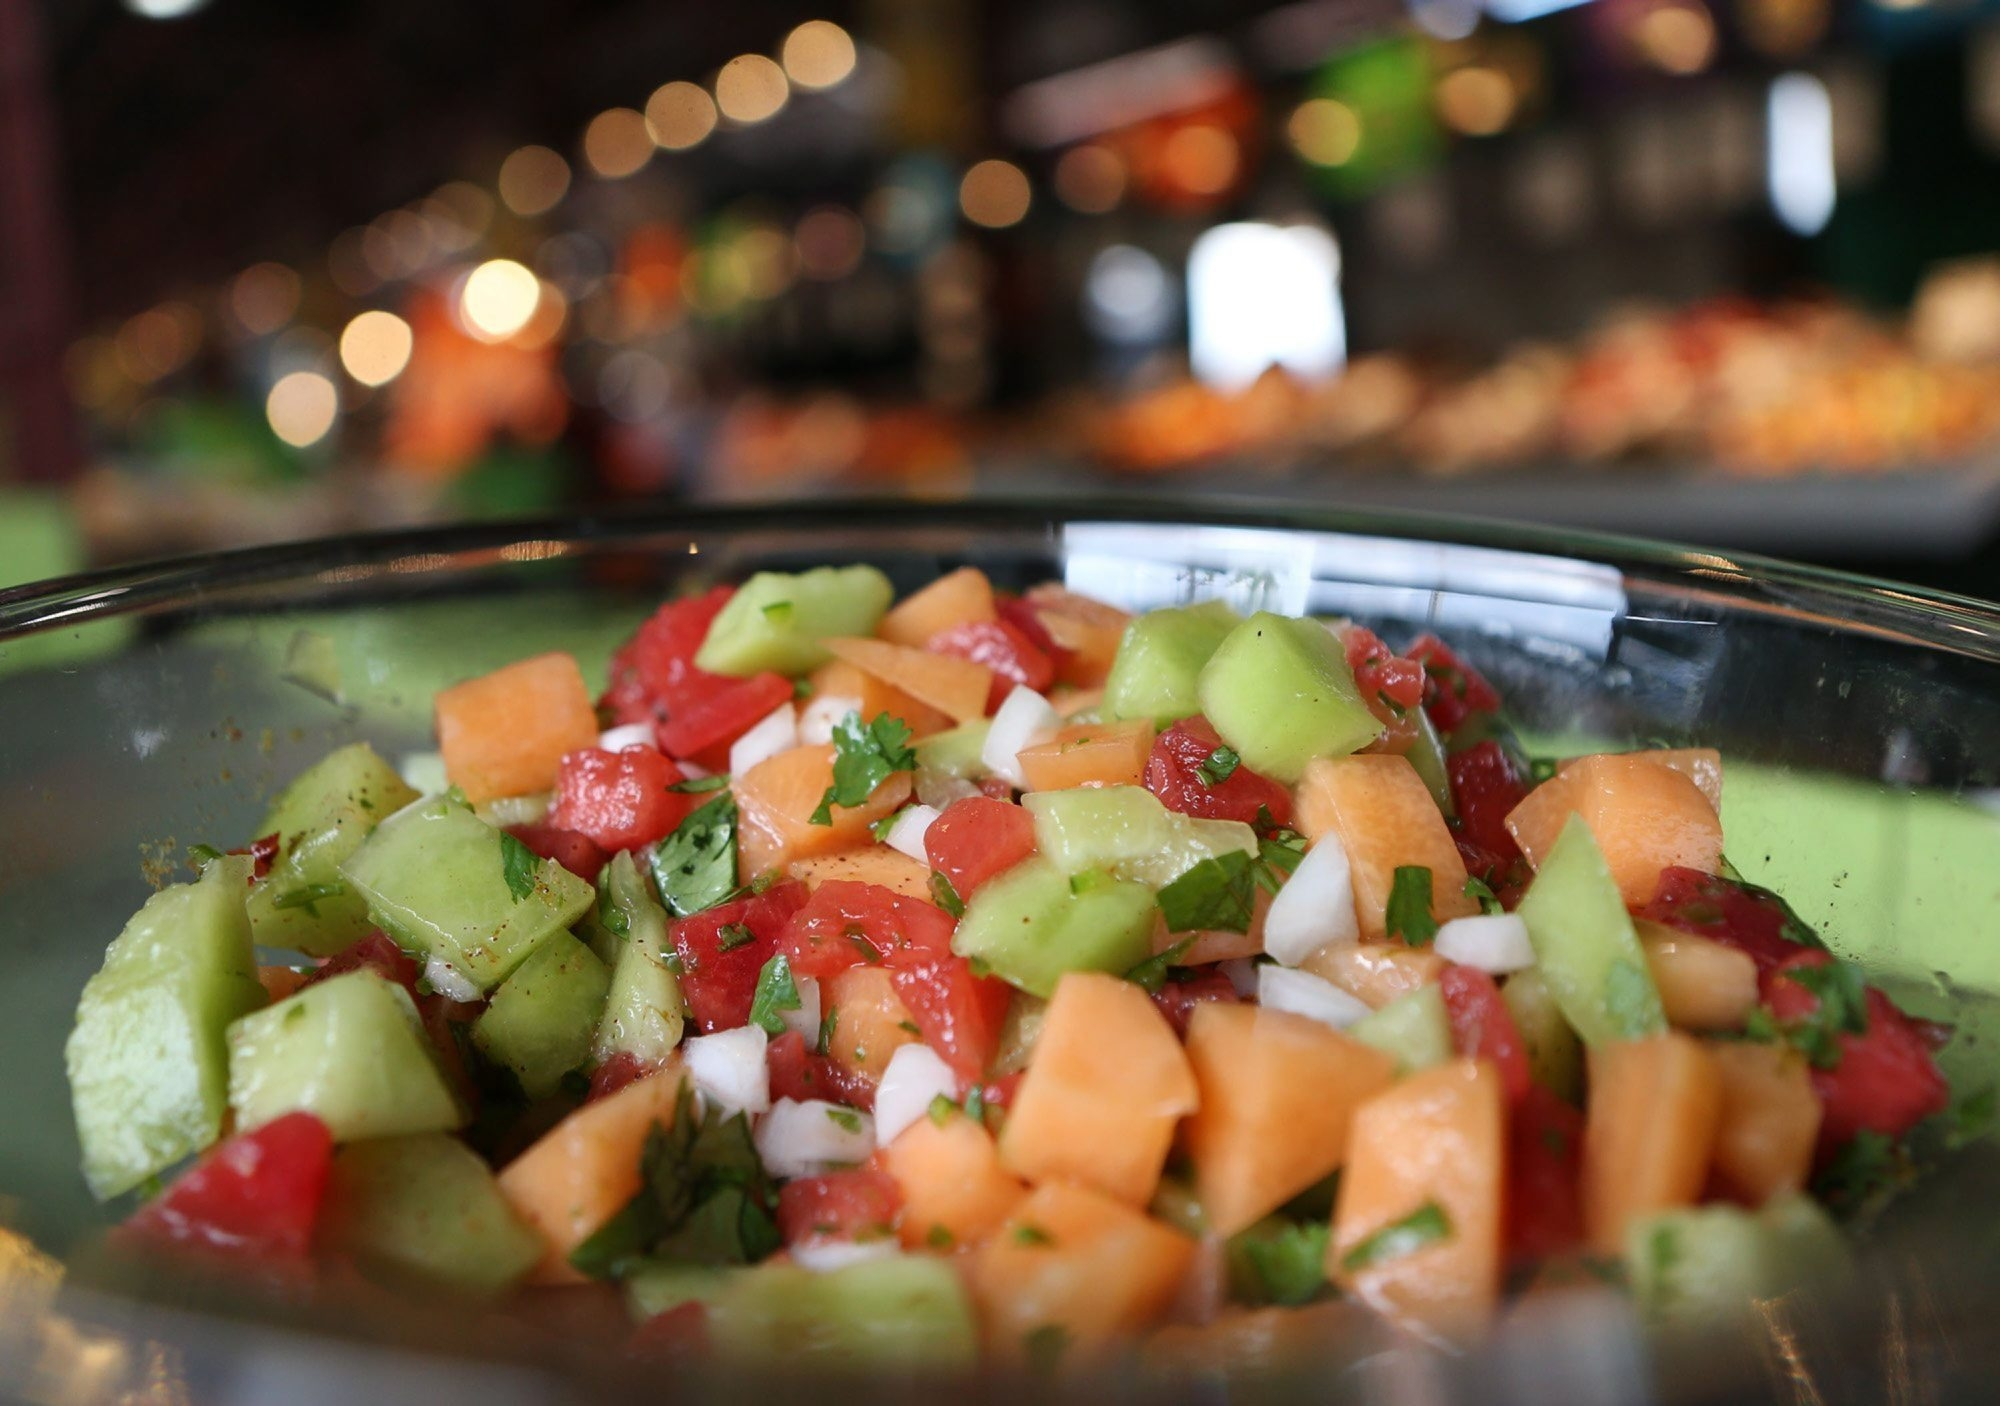 Picante Three-Melon Salad is bursting with colors and tastes of summertime.